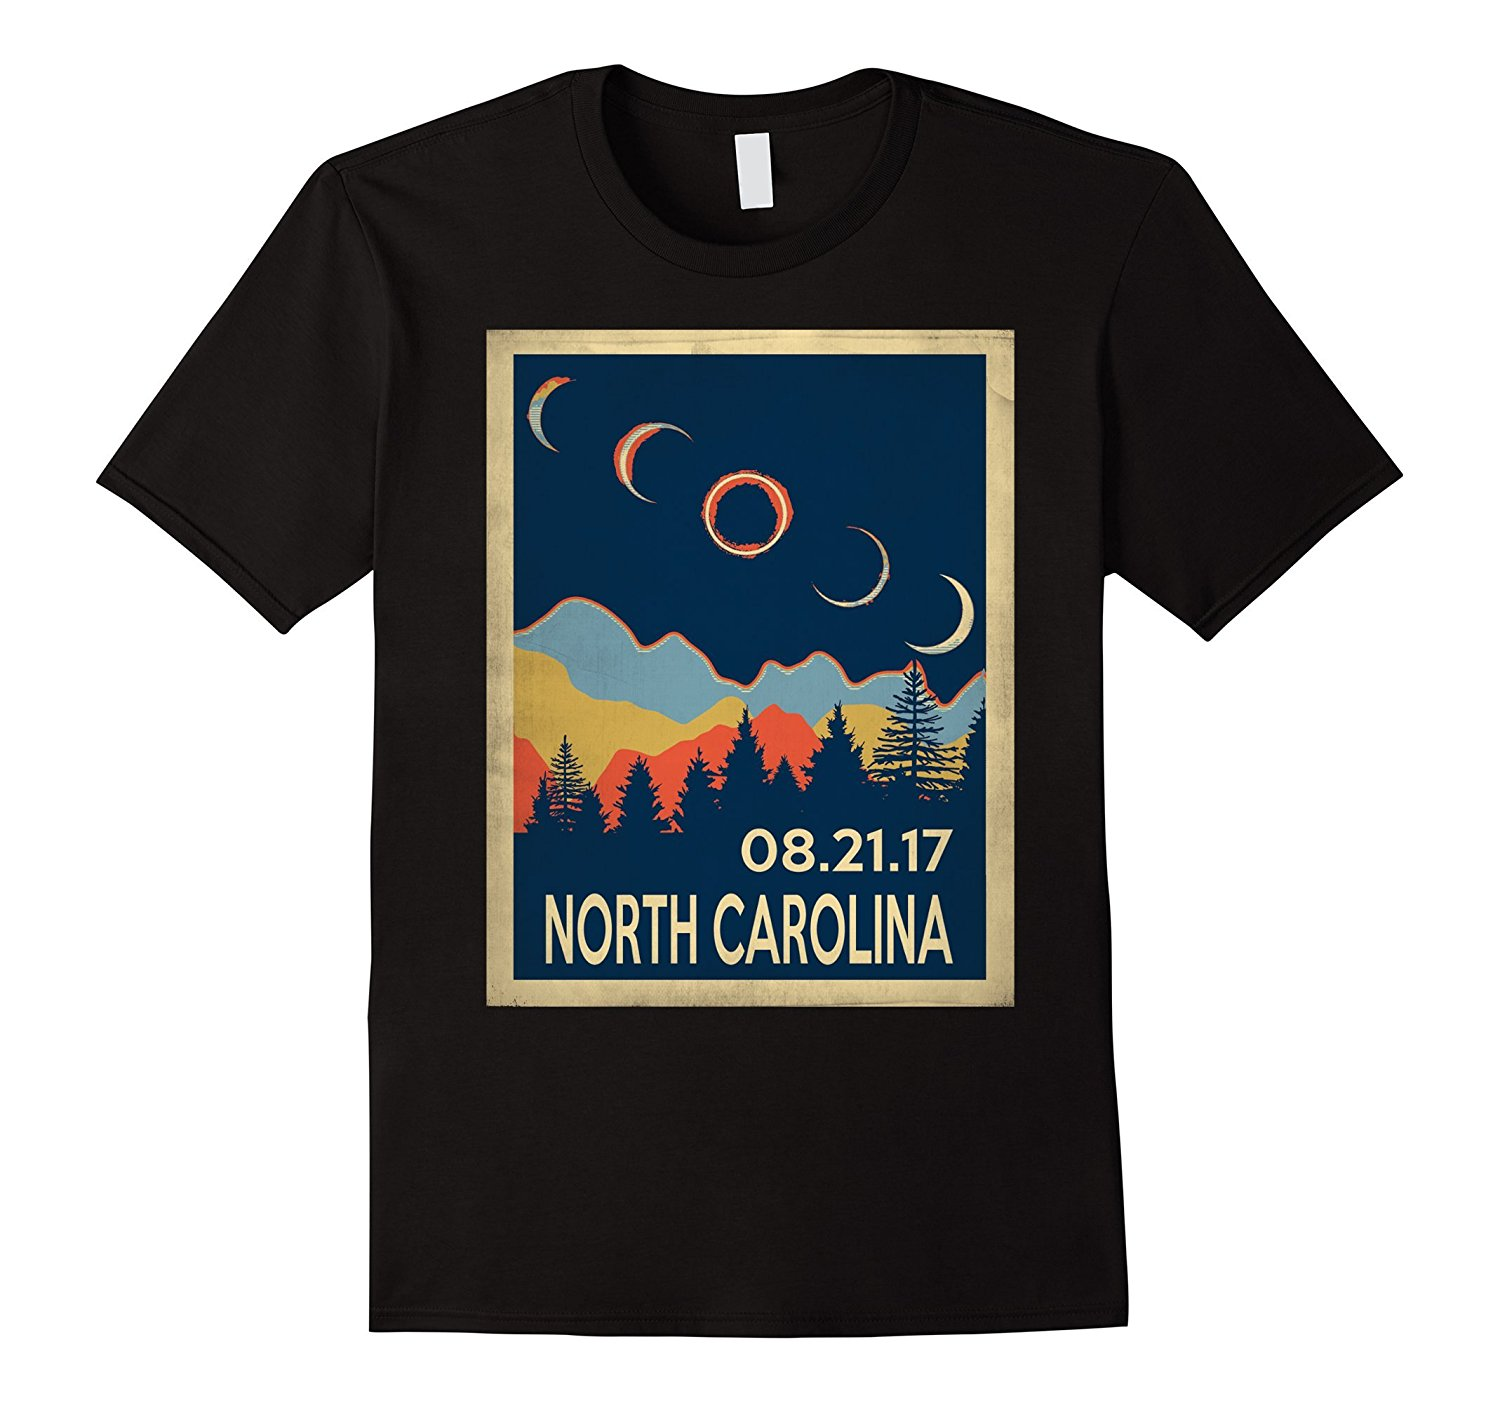 Vintage North Carolina Solar Eclipse 2018 Shirt Top Quality Cotton Casual Men T Shirts Men Free Shipping Hipster